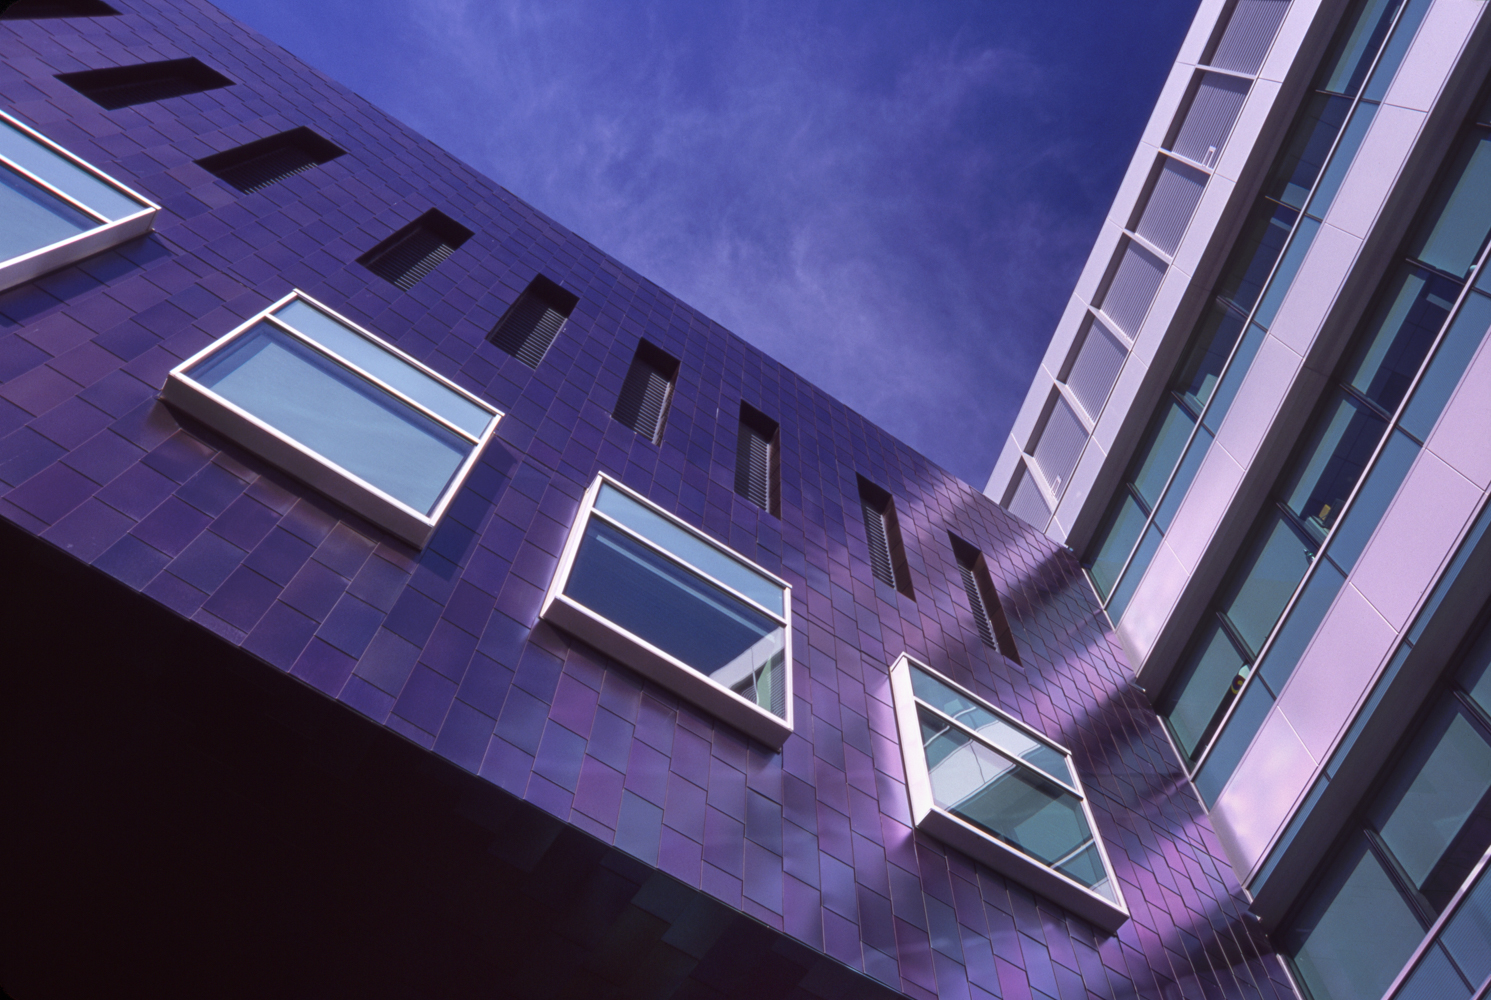 Zimmer Gunsul Frasca Architects selected stainless steel shingles for parts of the exterior of Moores Cancer Center, UC San Diego, in La jolla, California.  The panels are acid-etched, have an iridescent appearance, and depending on the sky light can appear green, blue, or purple.